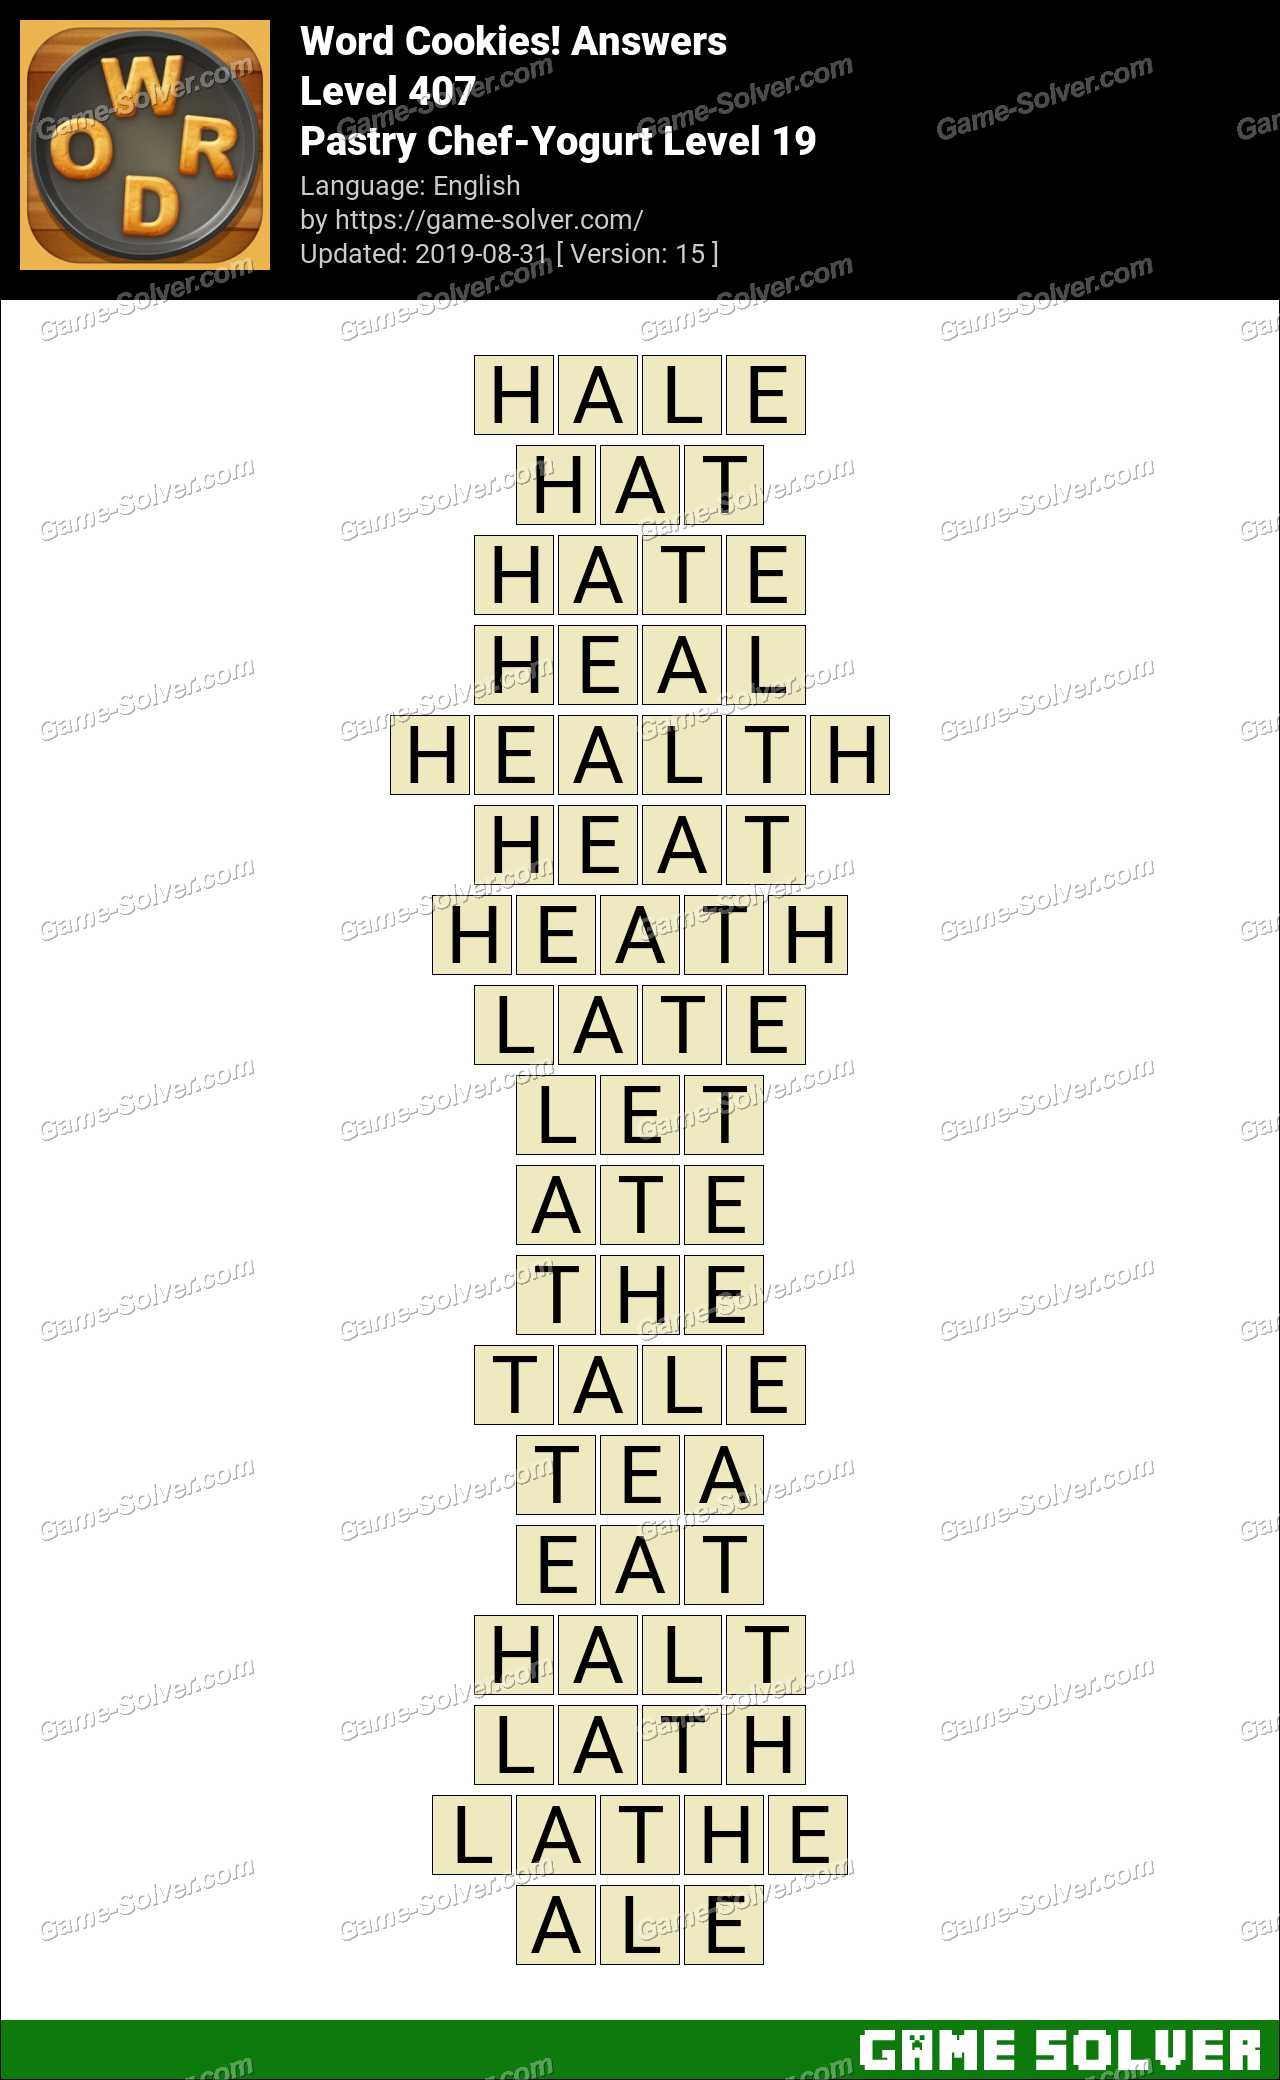 Word Cookies Pastry Chef-Yogurt Level 19 Answers